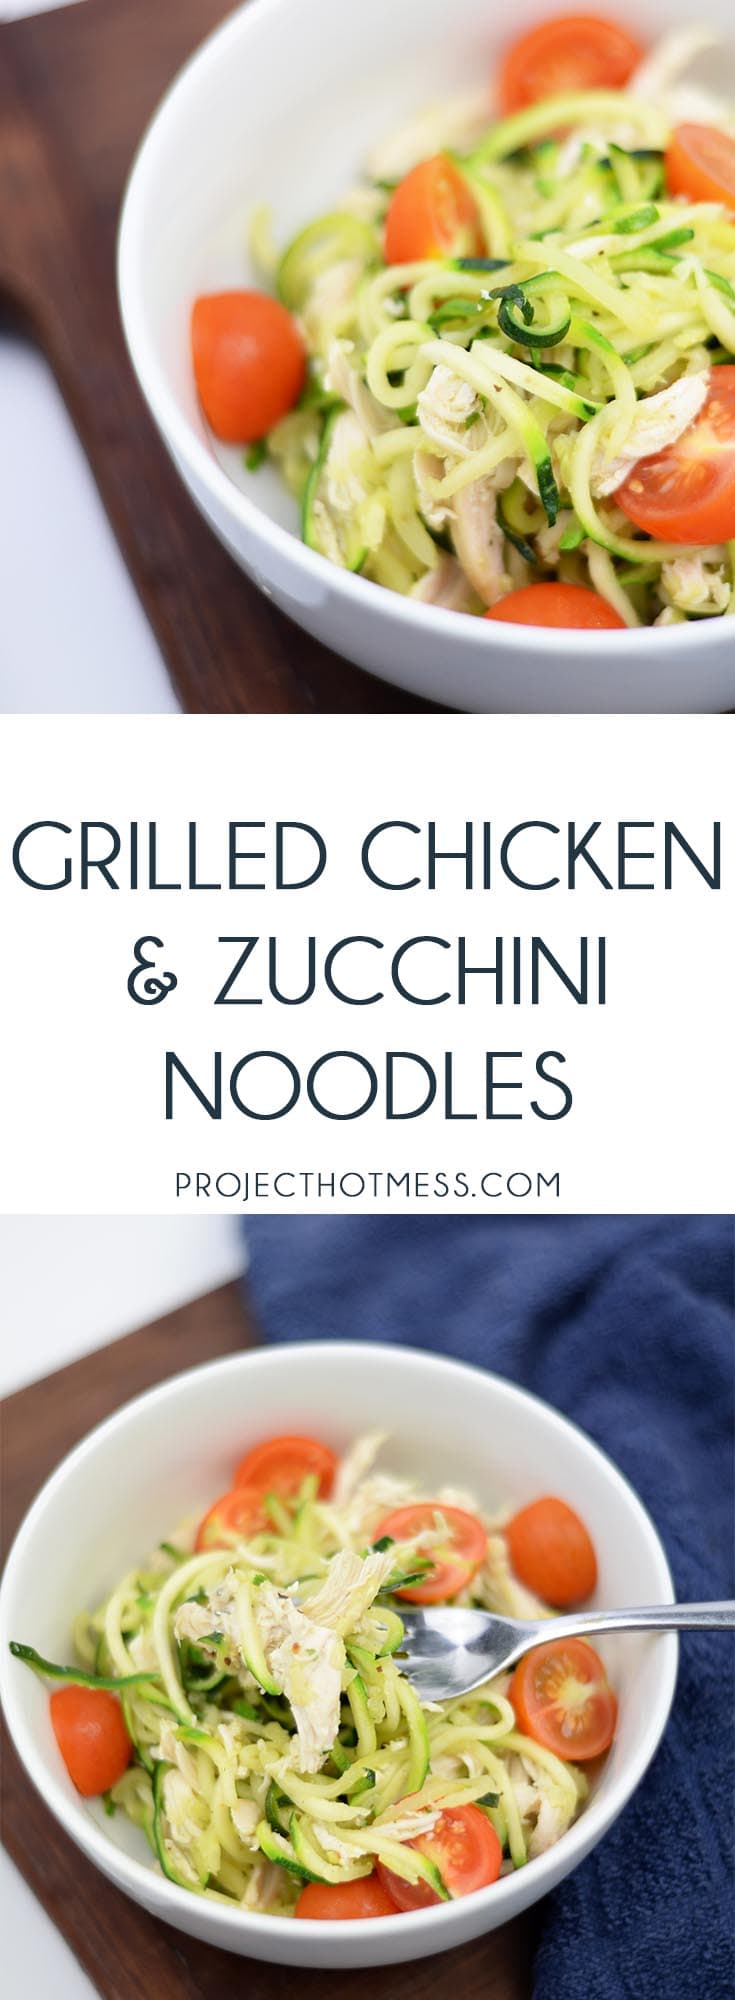 There's no replacing pasta, but these zucchini noodles come darn close. Super fast and easy meal to prepare that ticks the tasty and healthy boxes. Winner! Fast Meal | Simple Meal | Quick Meal | Paleo | Zoodles | Zucchini Noodles | Primal | Whole 30 | Gluten Free | Family Friendly | Budget Meals | Mid-Week Meals | Meal Planning | Fresh Meals | Paleo Recipe | Paleo for Kids |